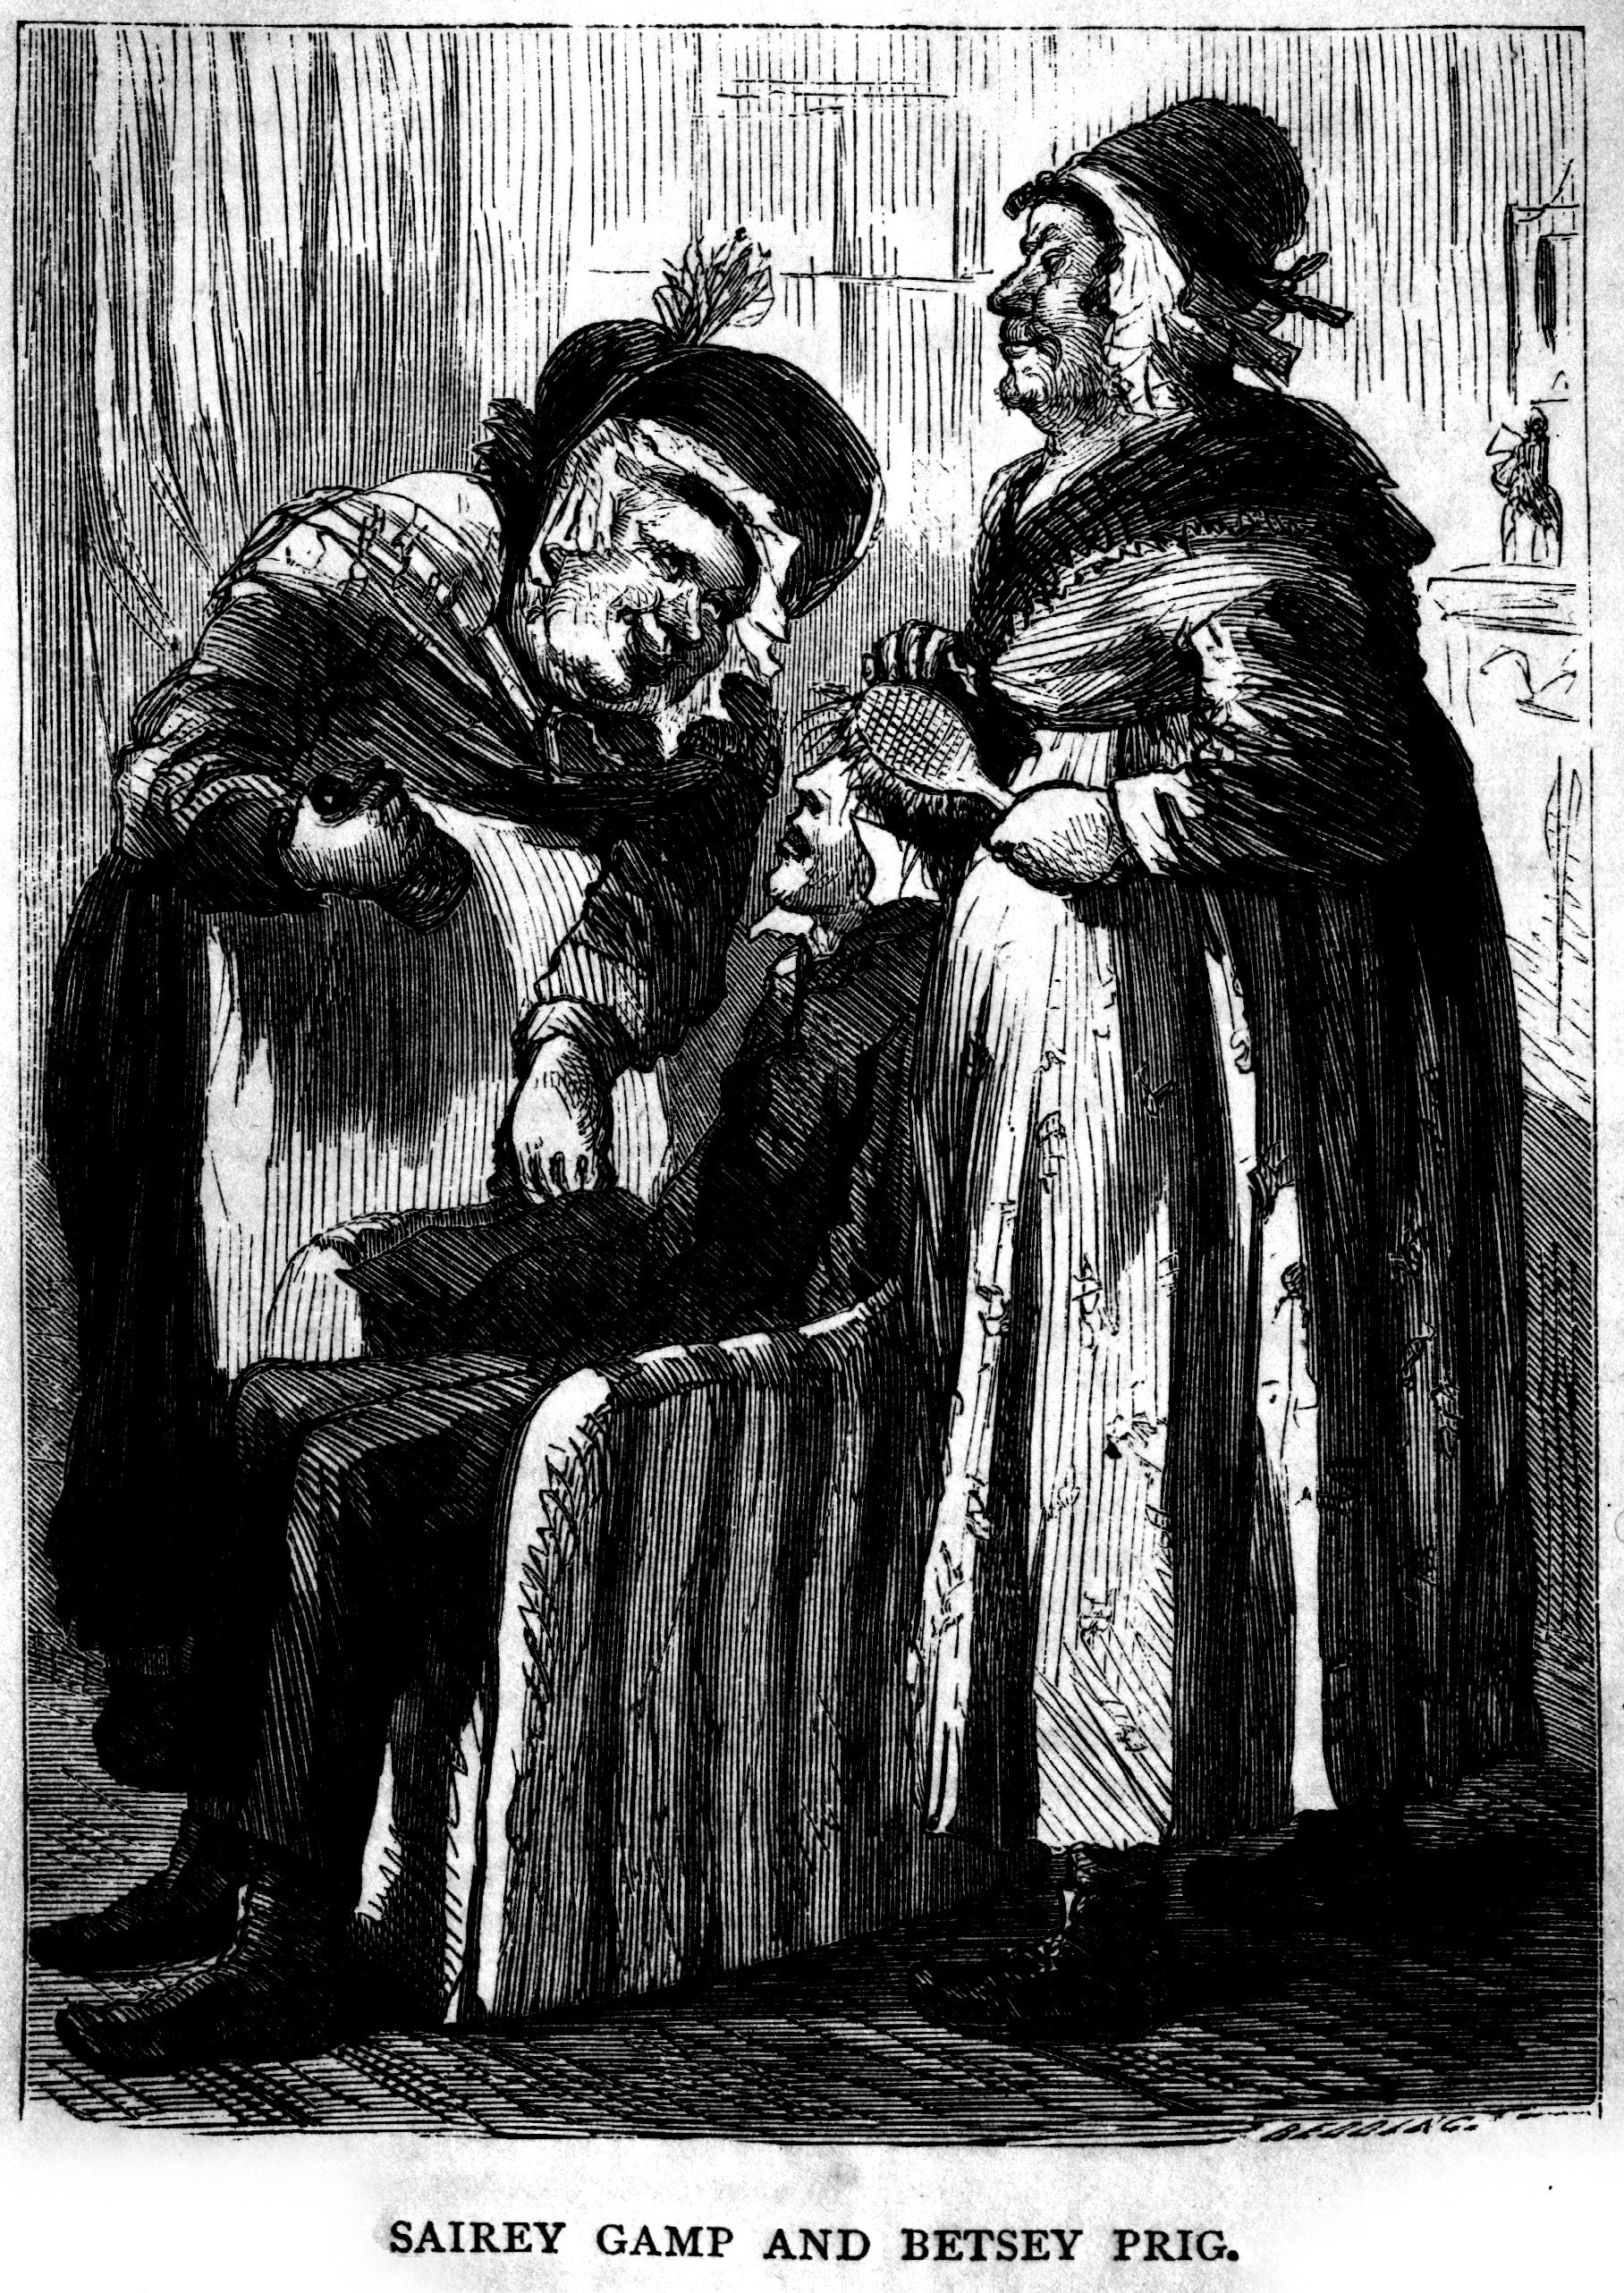 Illustration in Charles Dickens' Martin Chuzzlewit. Nurse Sarah Gamp (left) became a stereotype of untrained and incompetent nurses of the early Victorian era, before the reforms of Nightingale. From page 269 in the 1867 U.S. edition of The Life and Adventures of Martin Chuzzlewit, by Charles Dickens, with original illustrations by S. Eytinge, Jr. Boston: Ticknor and Fields, 1867.